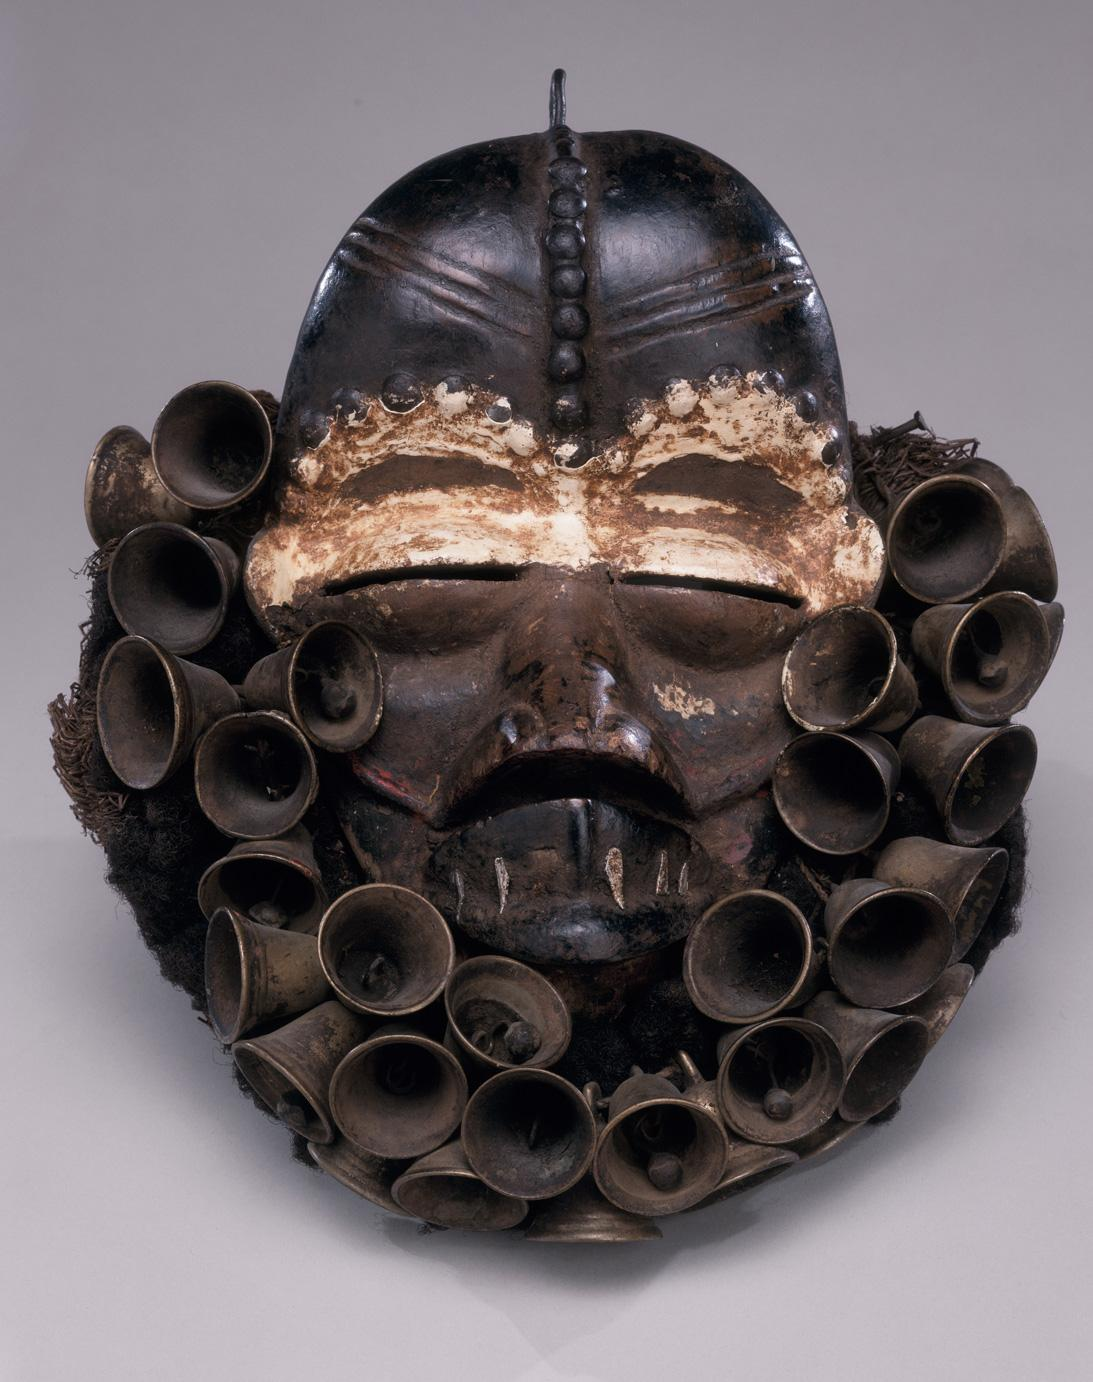 """Singer"" dance mask, early 20th century Ivory Coast (We) Wood, bells, fiber, chalk 11 3/4 x 9 1/2 inches Gift of Richard J. Faletti Family Collection 2000-5-1"